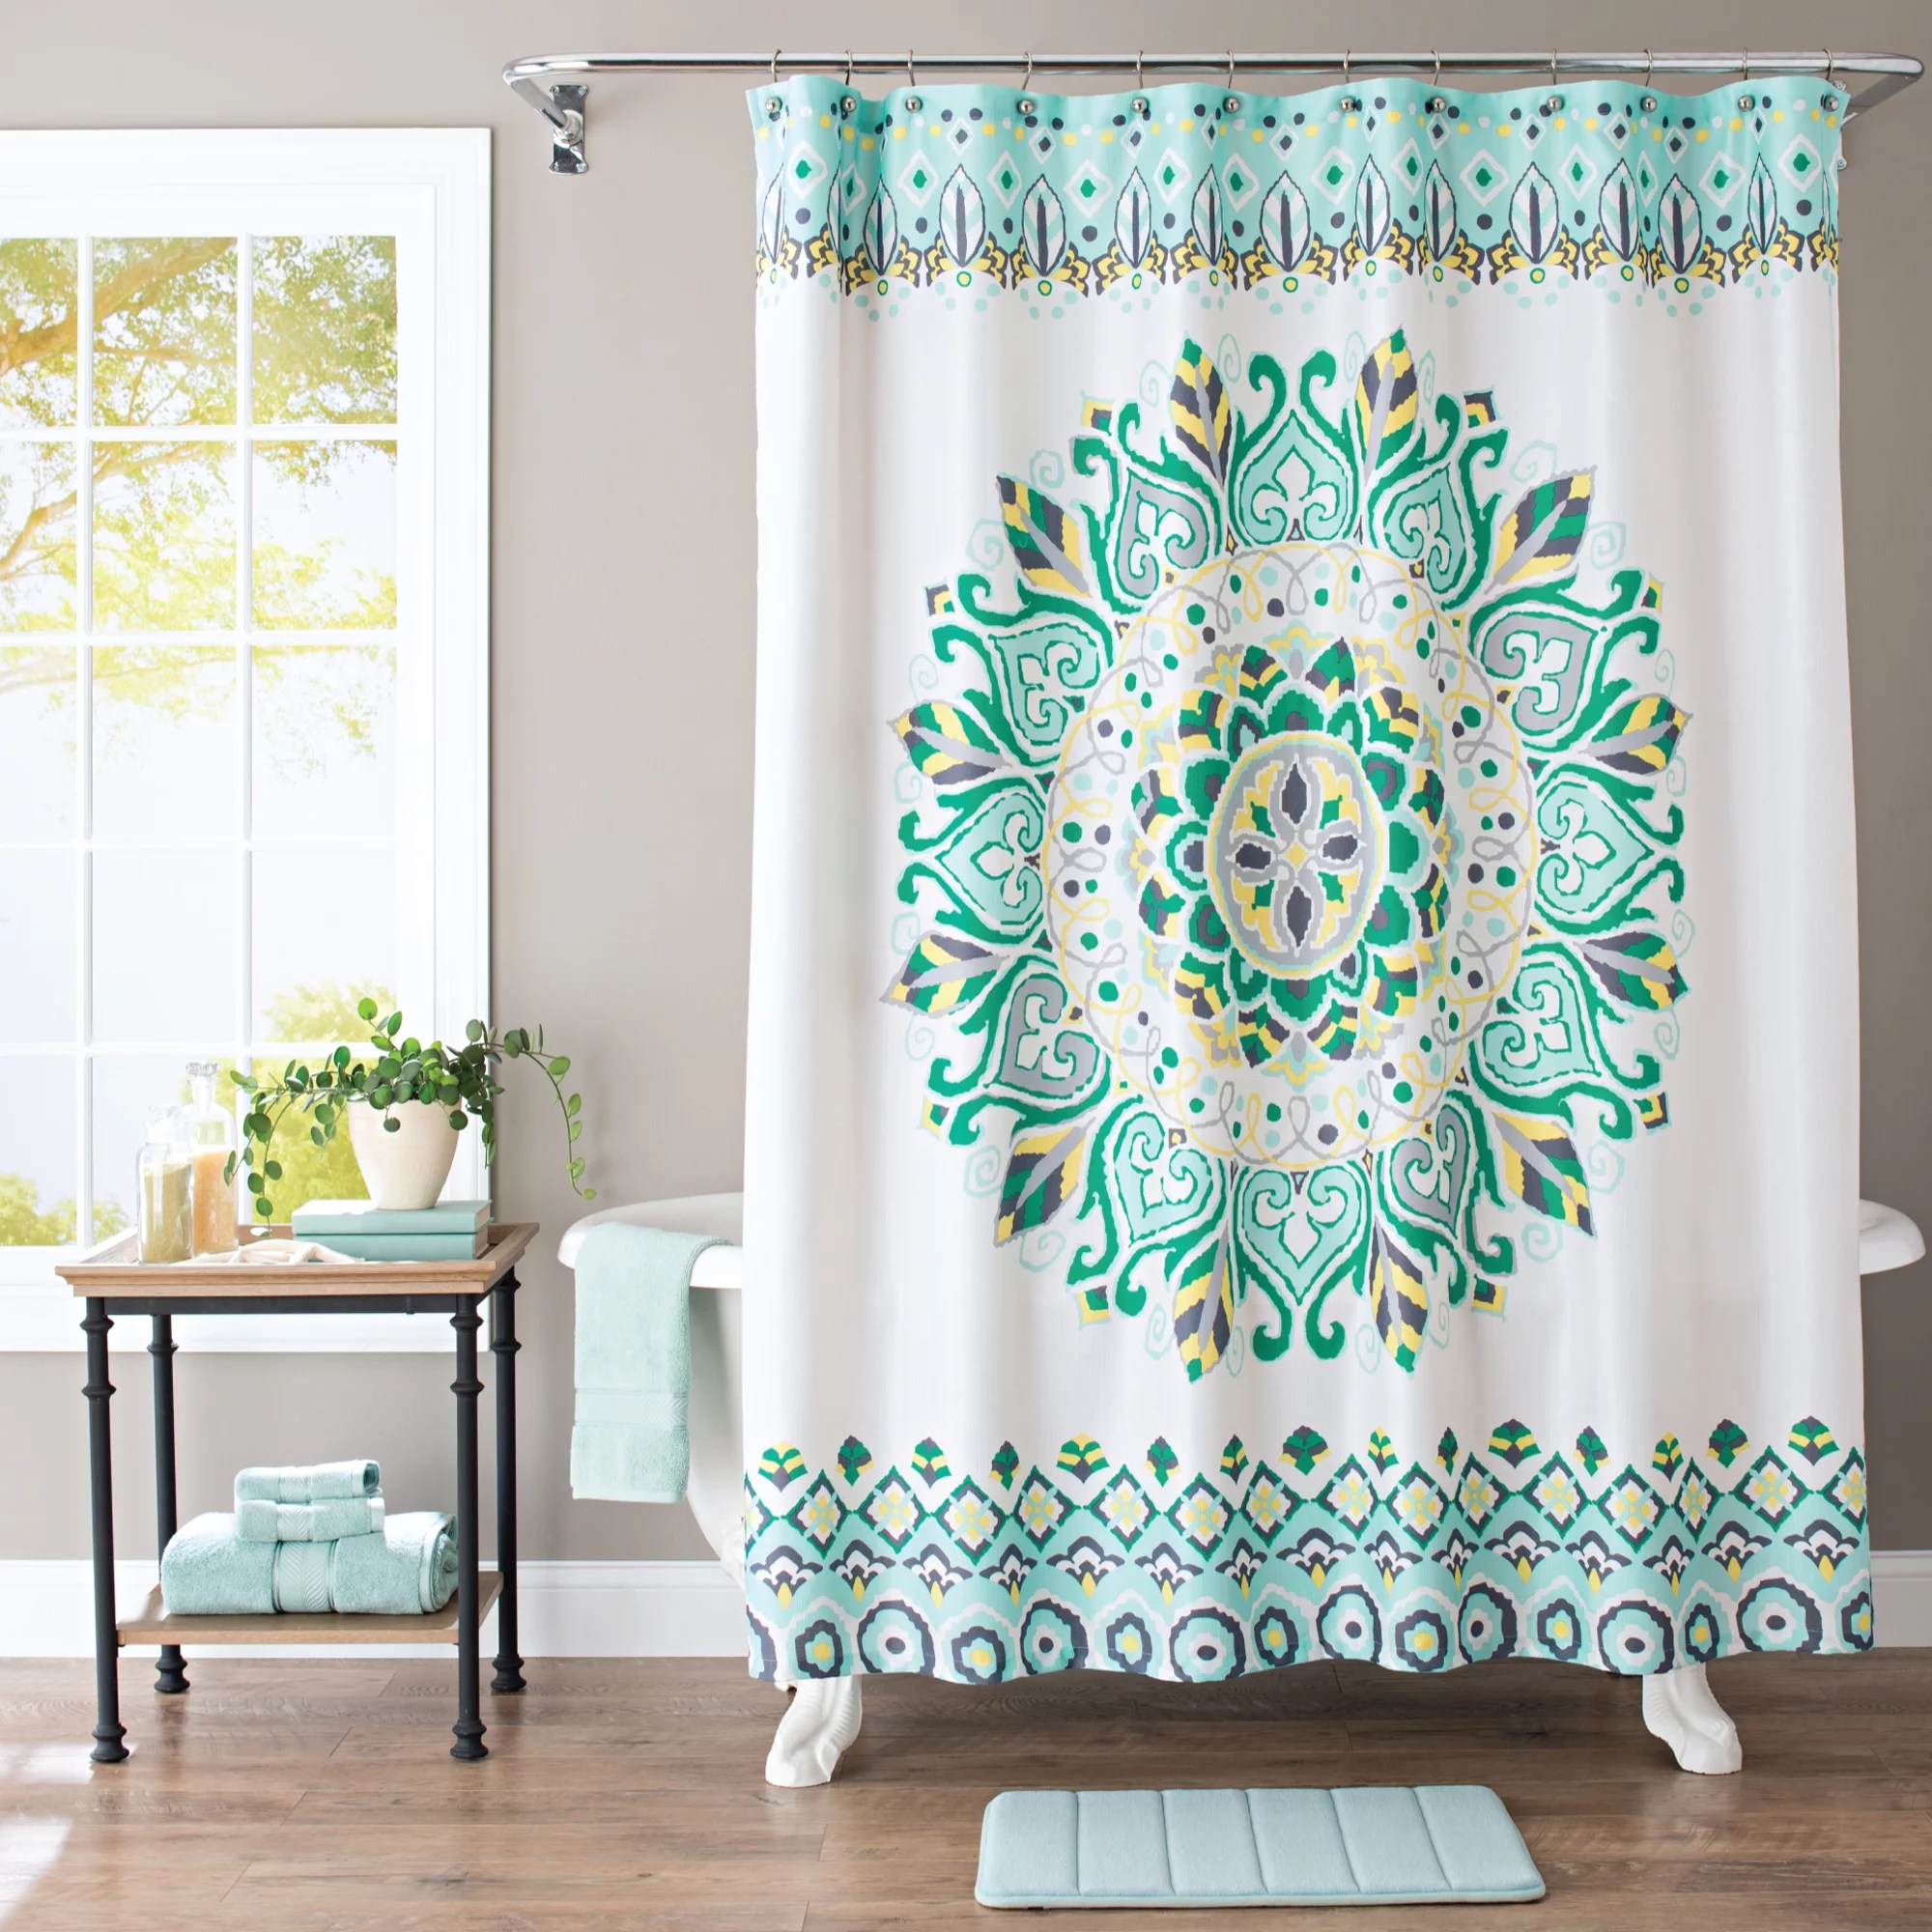 Better Homes and Gardens Medallion Fabric Shower Curtain  Walmartcom